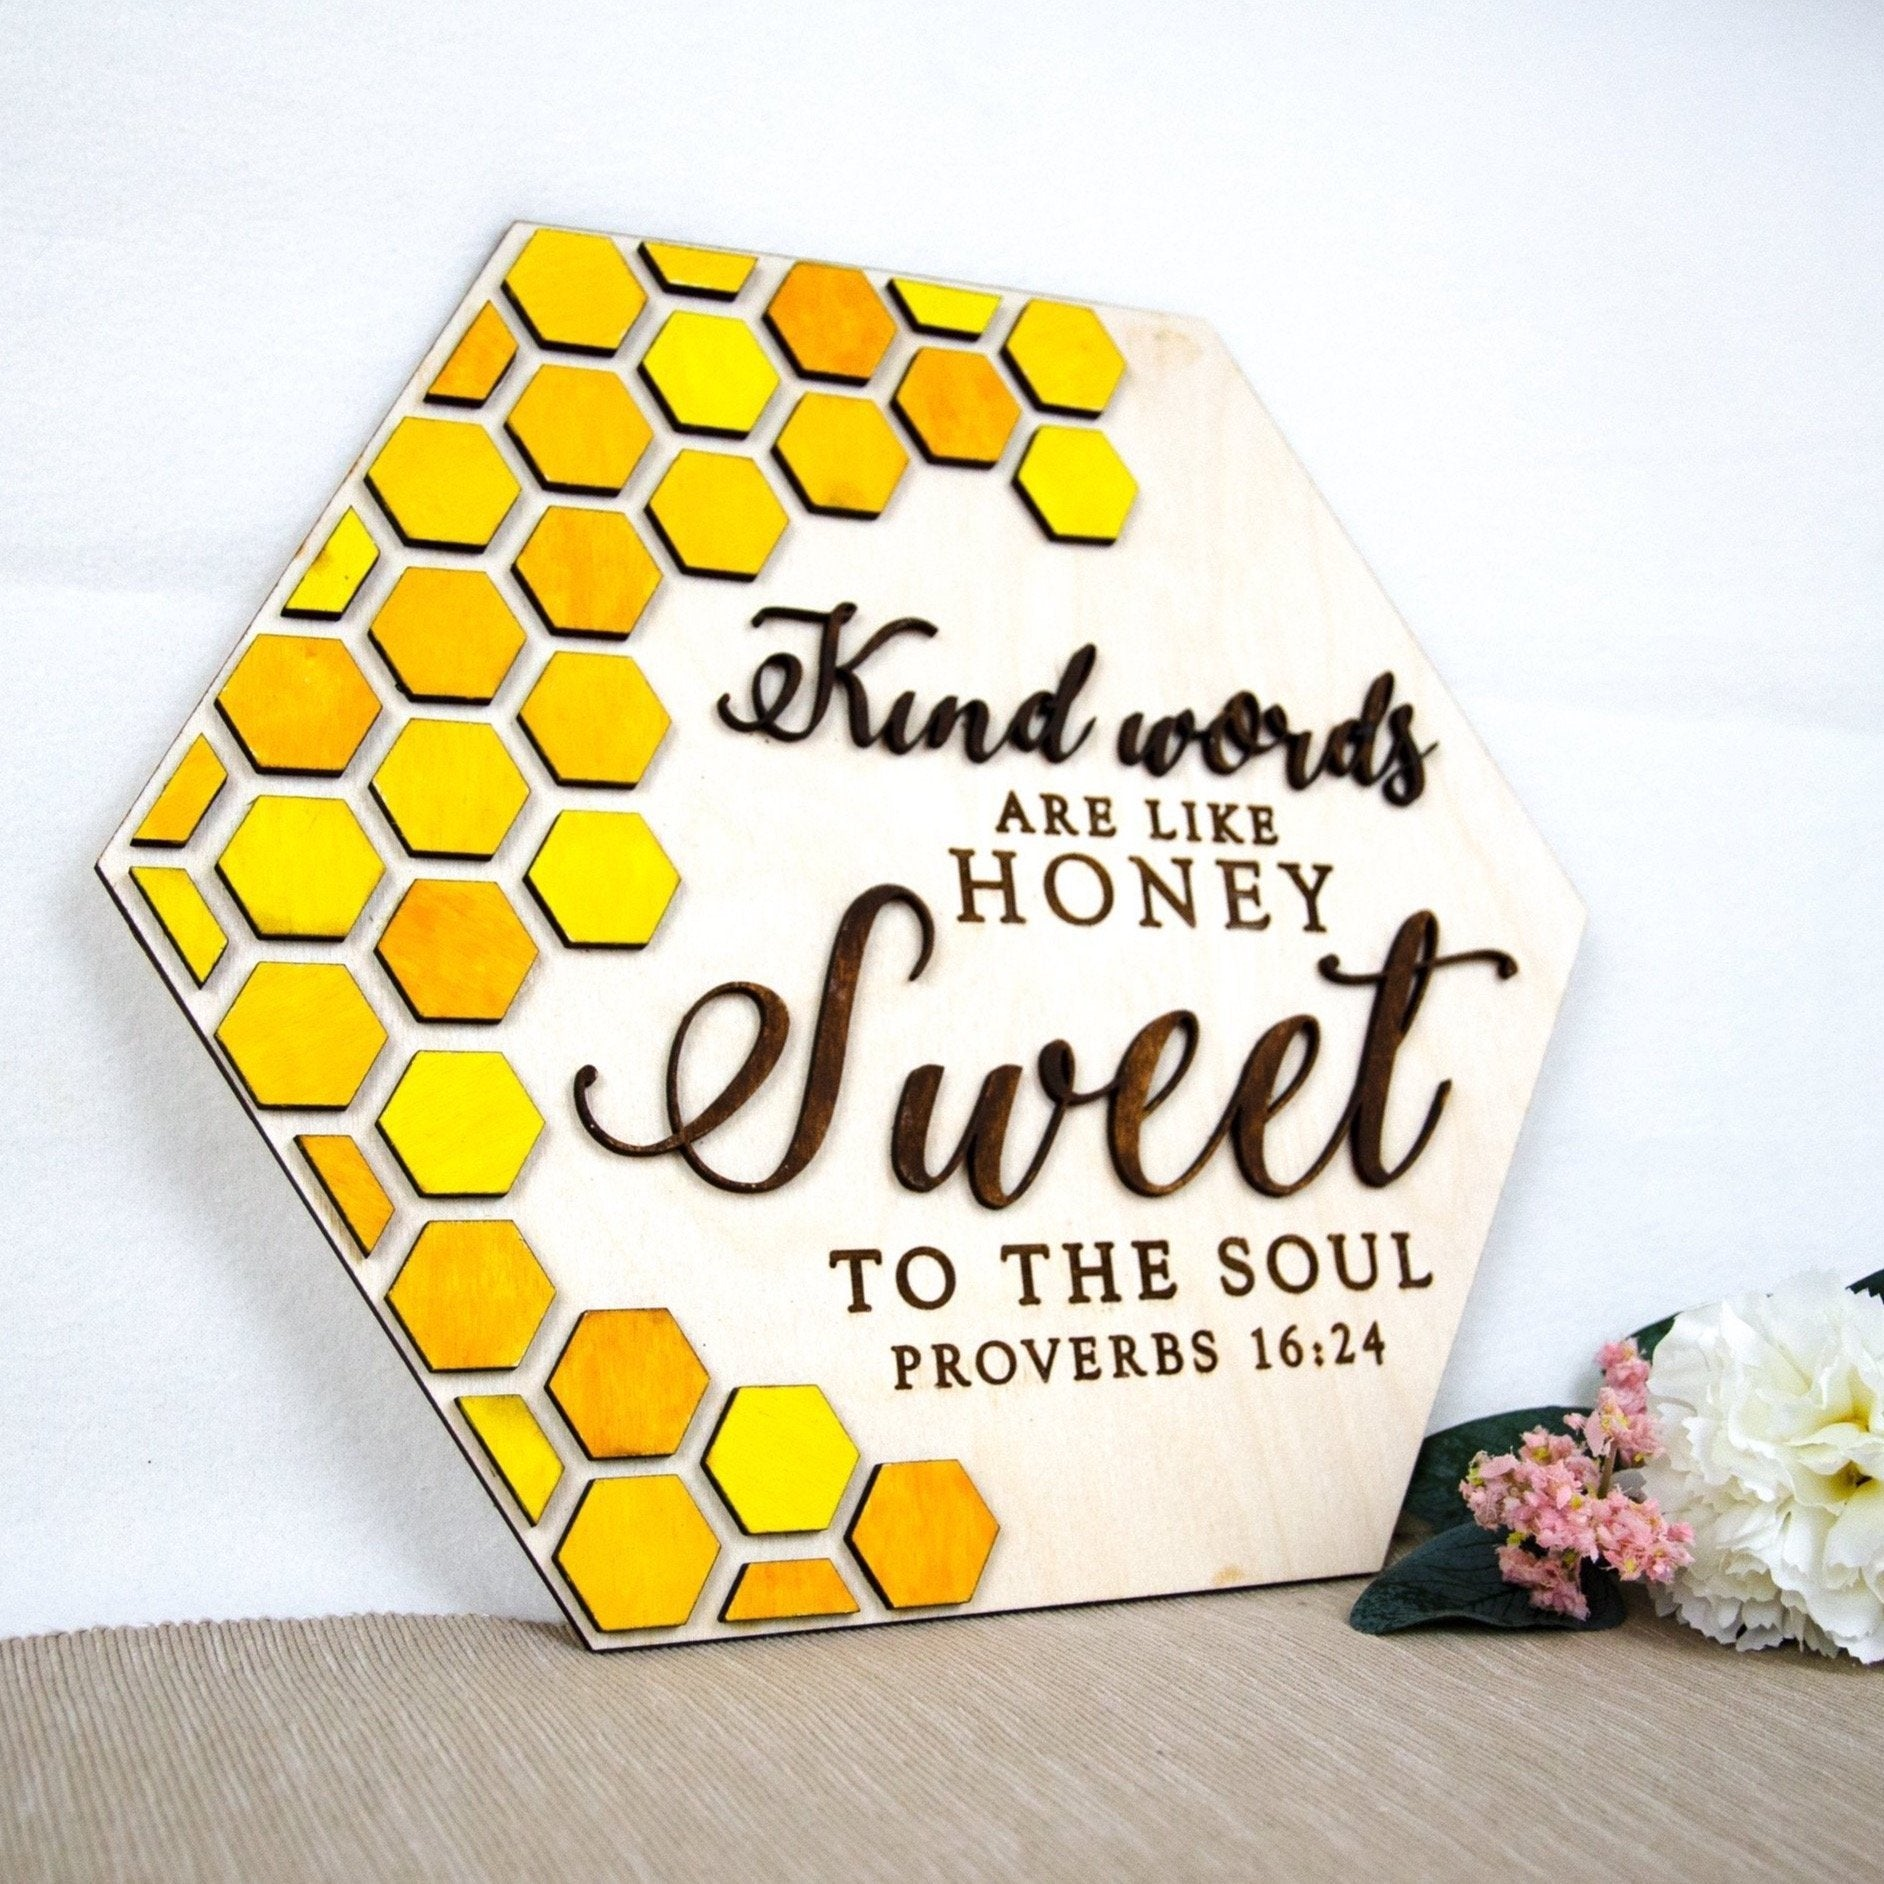 Kind words are honey wooden wall sign